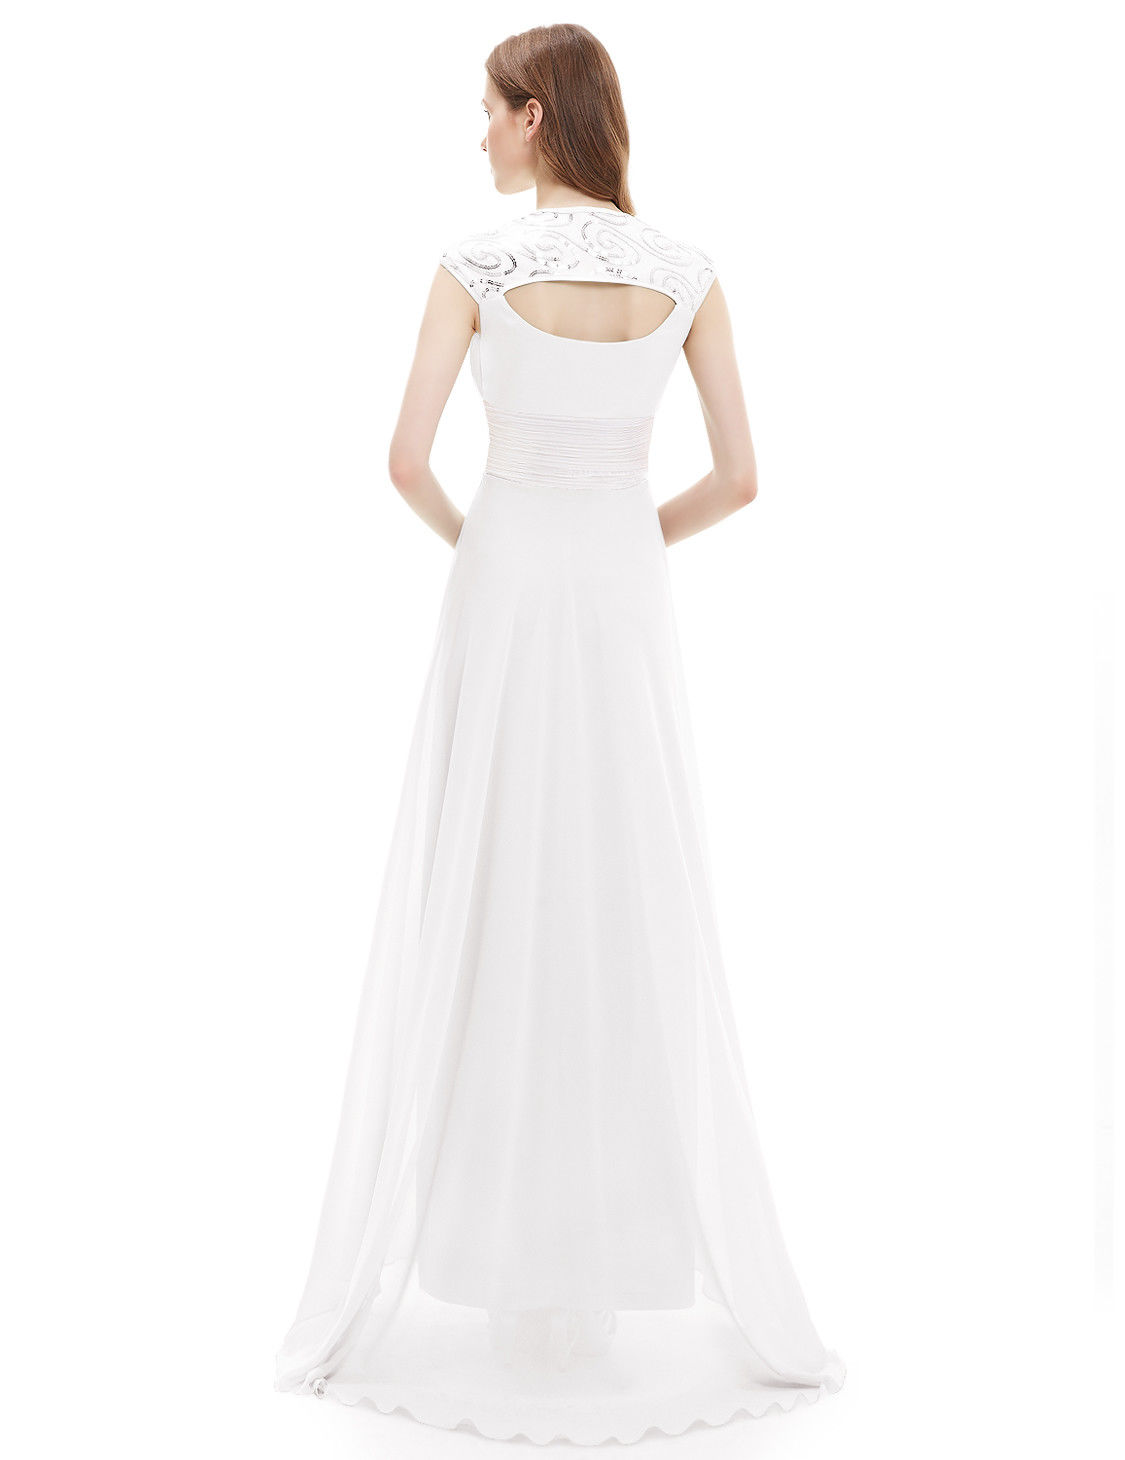 196a8836e03f Long Chiffon Bridesmaid Dress Evening Formal Party Ball Gown Prom 09672  Size 14